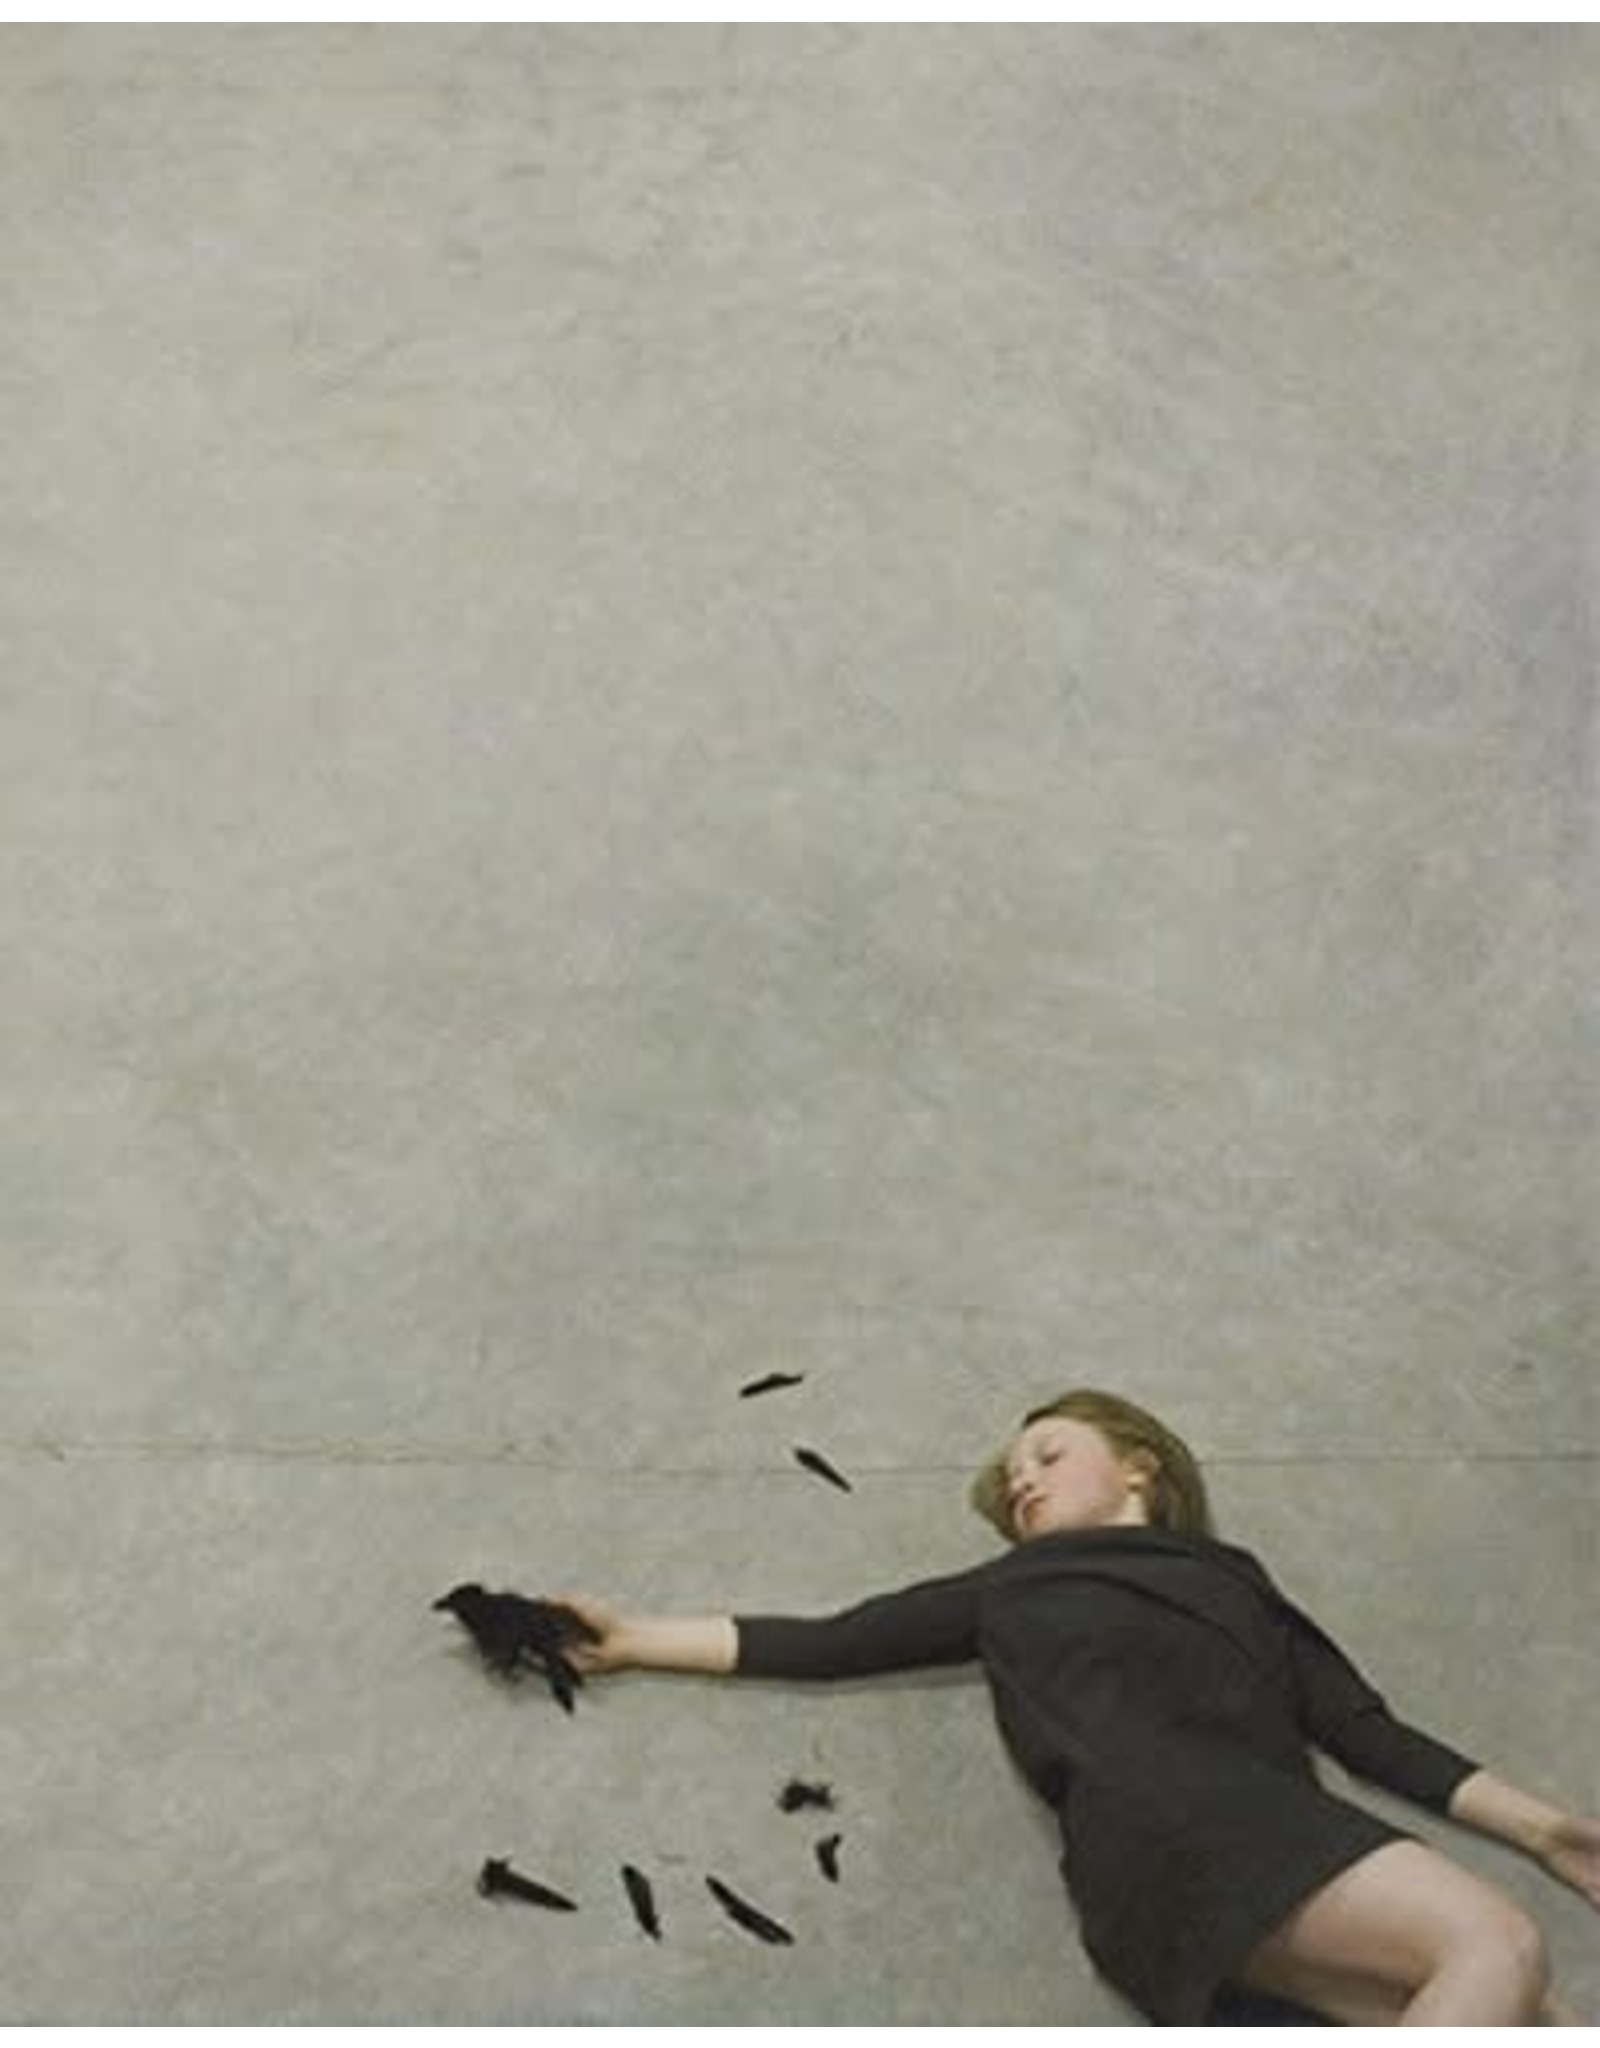 Robert and Shana Parkeharrison: Counterpoint (Clamshell Edition)